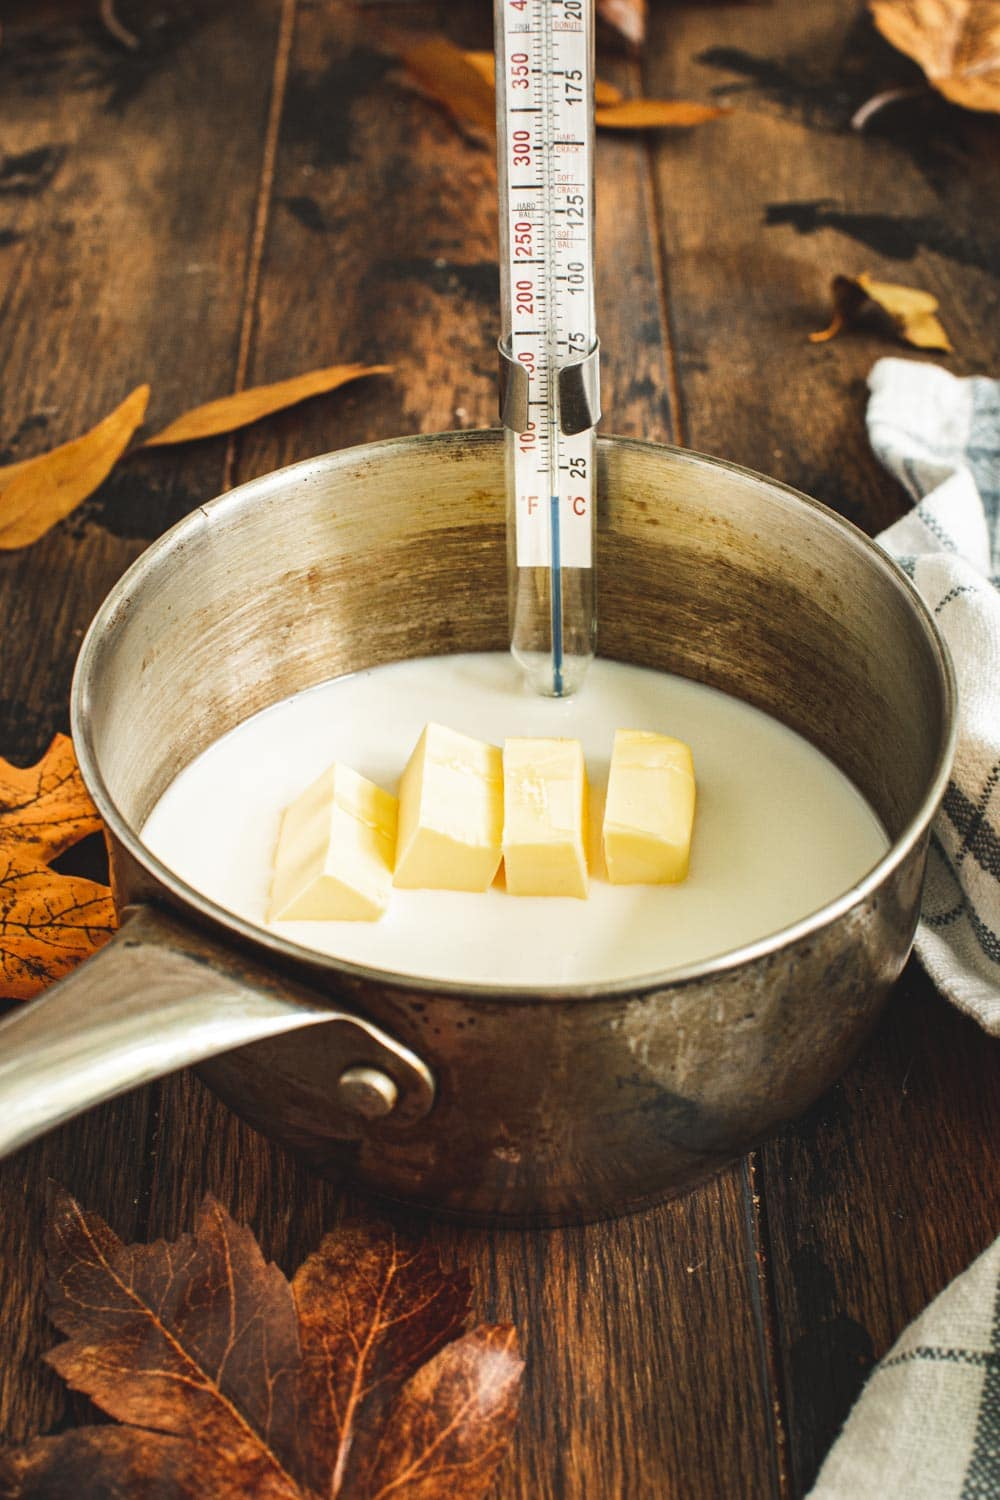 Milk mixture ingredients in small saucepan with candy thermometer clipped to the side.